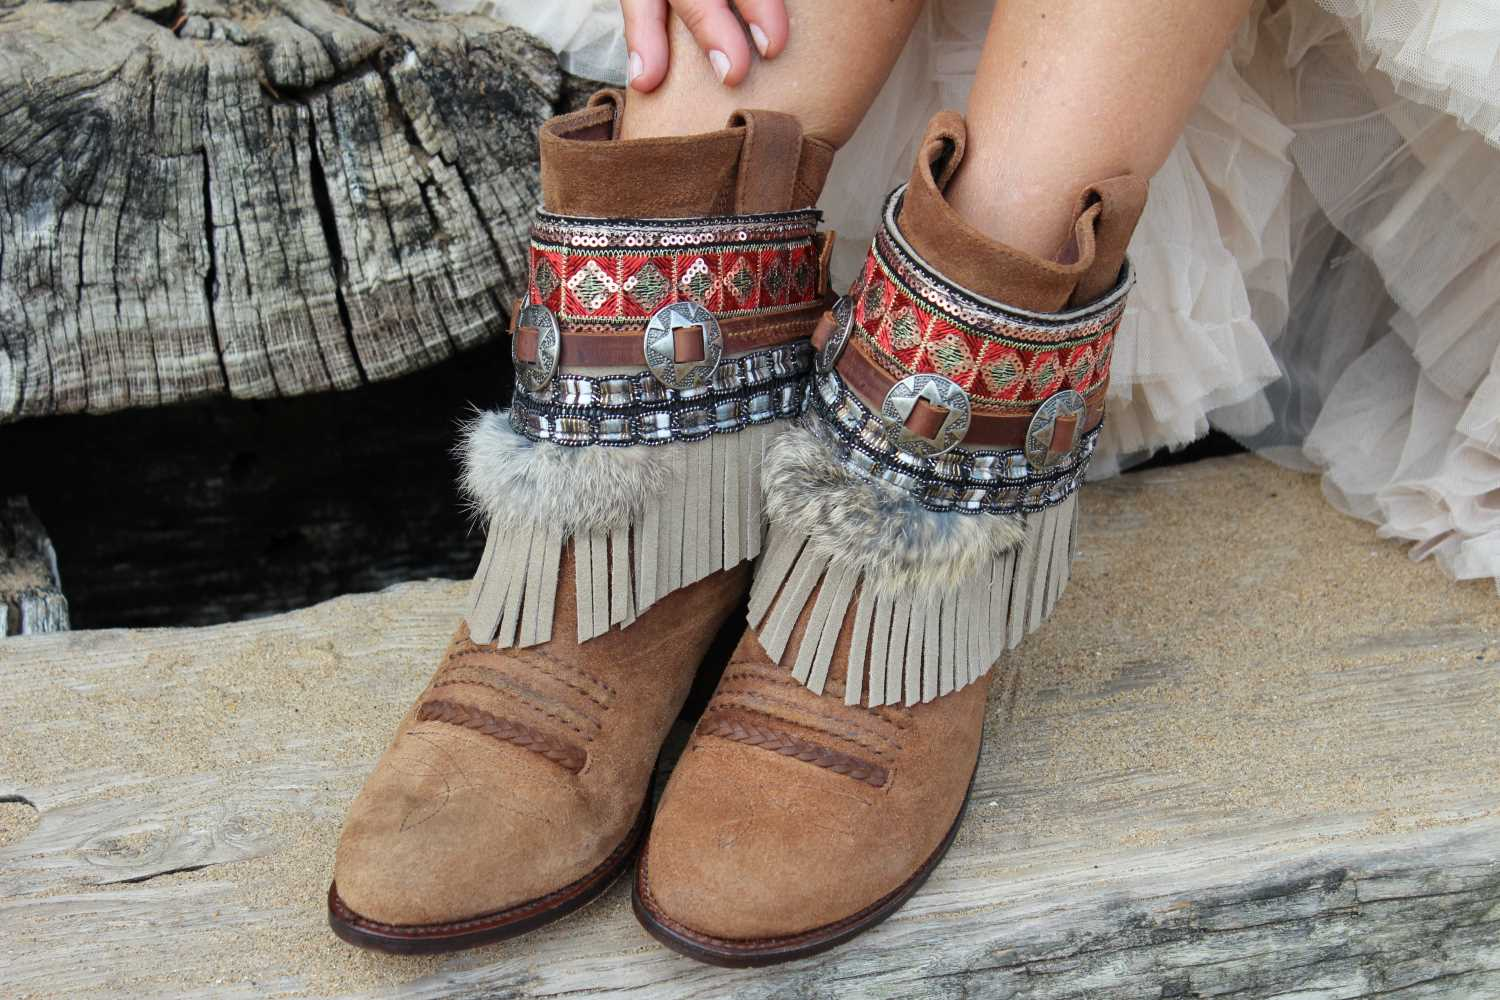 Coverboots cover boots boho style indie maison